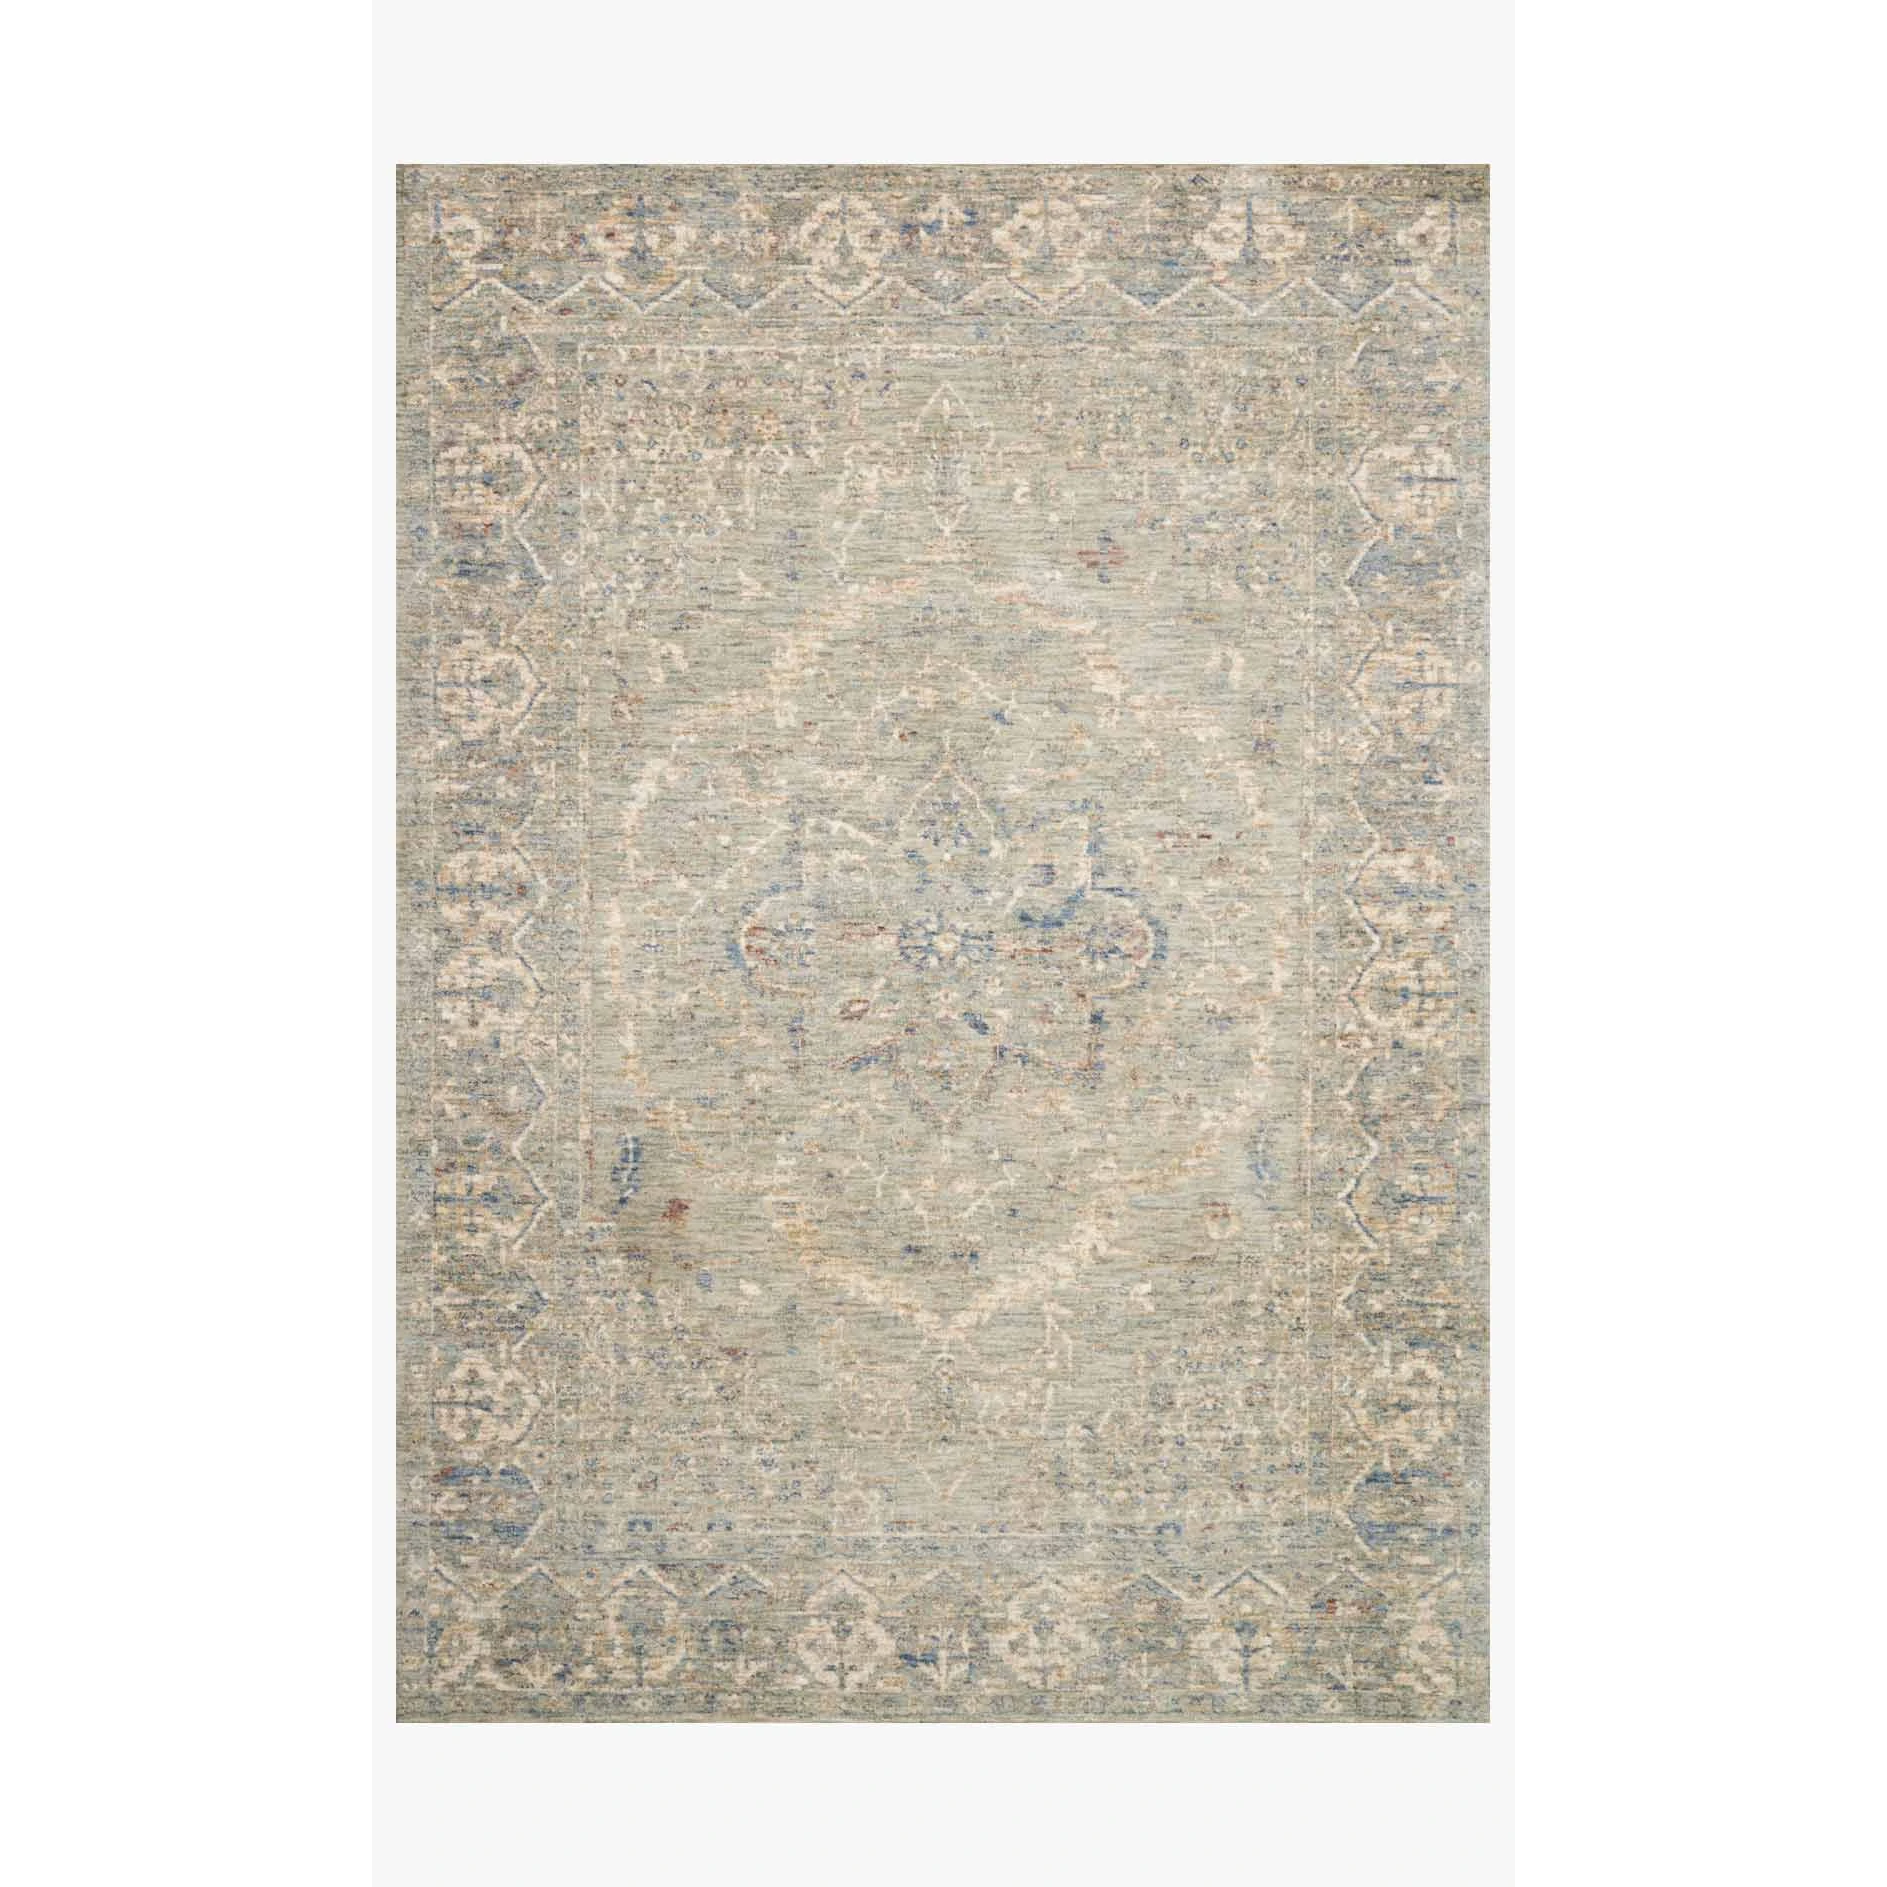 Revere Rugs by Loloi - REV-02 Mist-Loloi Rugs-Blue Hand Home